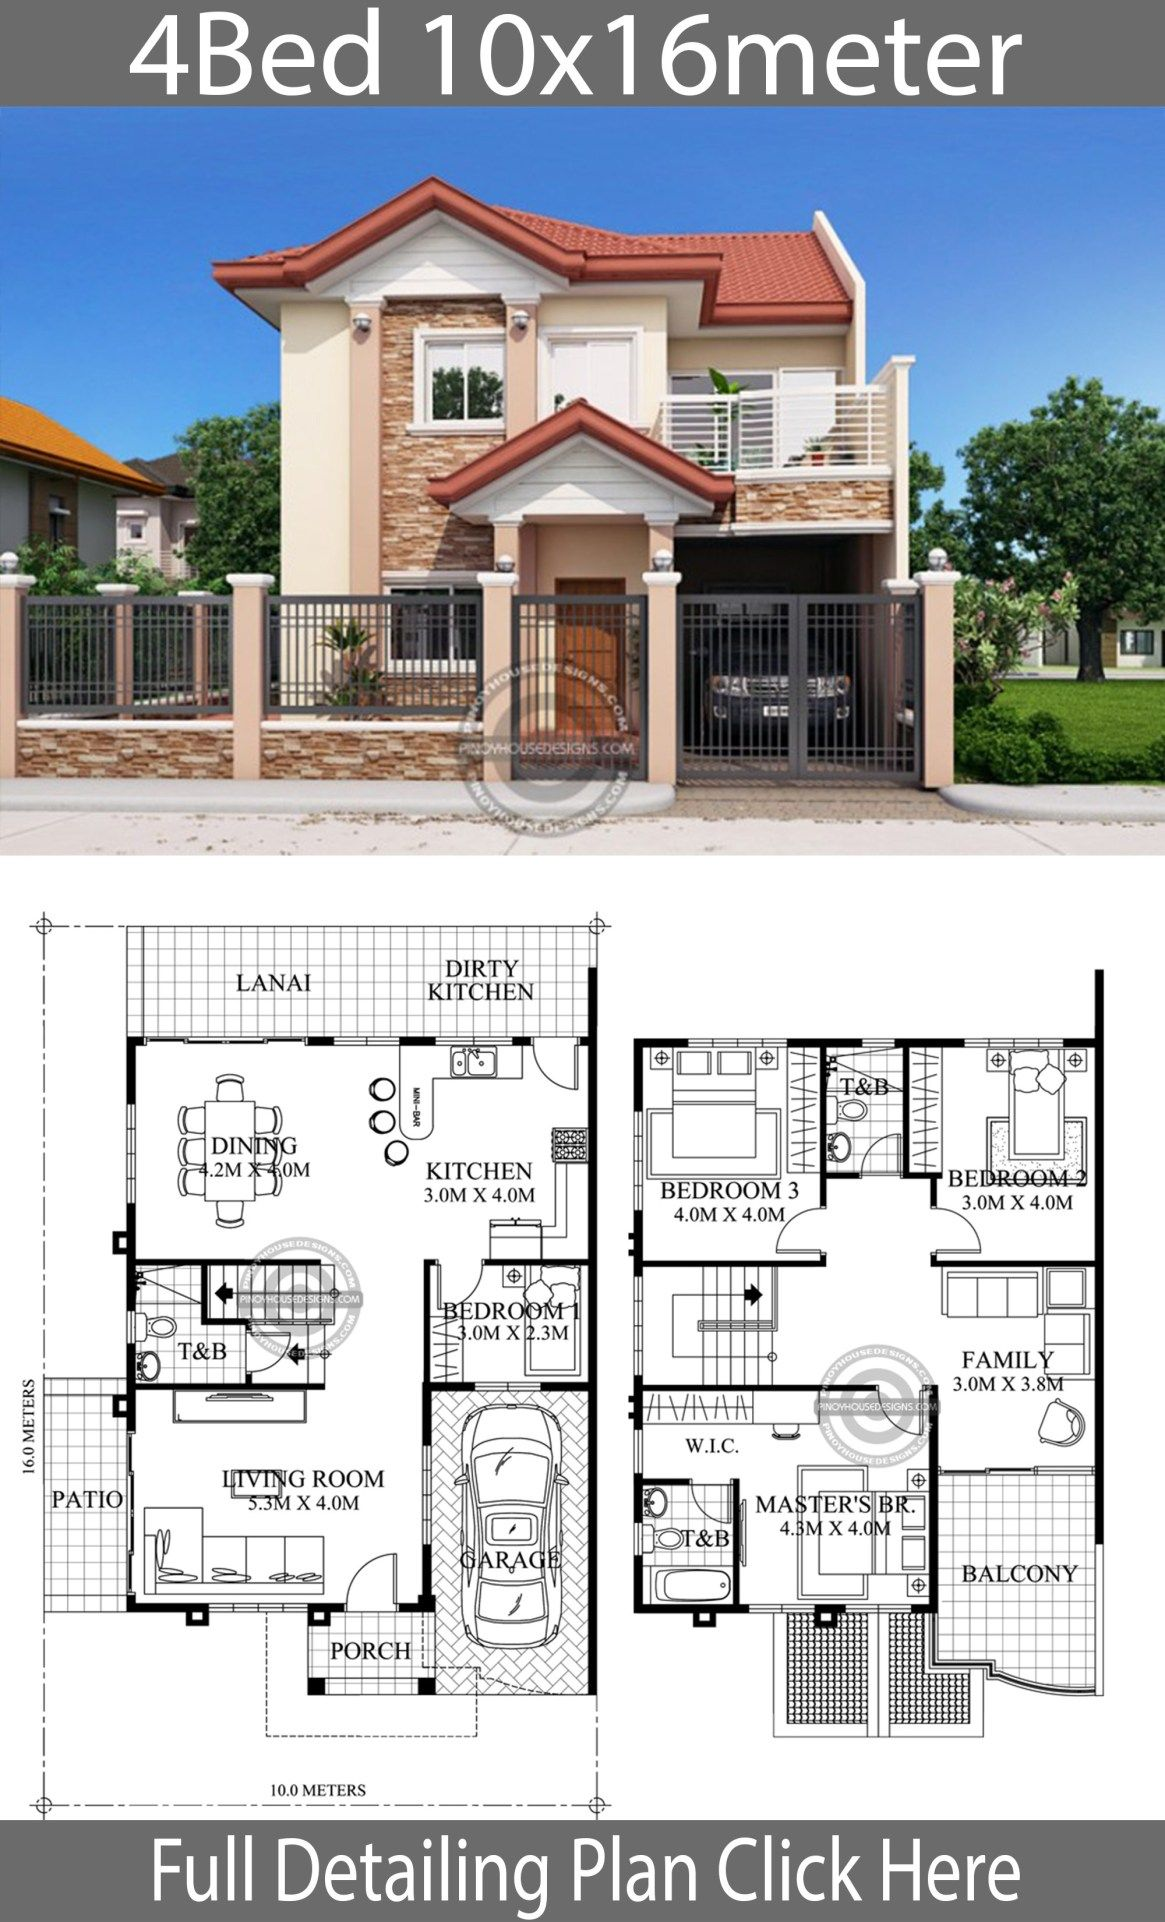 Home Design 10x16m 4 Bedrooms Home Design With Plansearch House Construction Plan Philippines House Design Two Story House Design